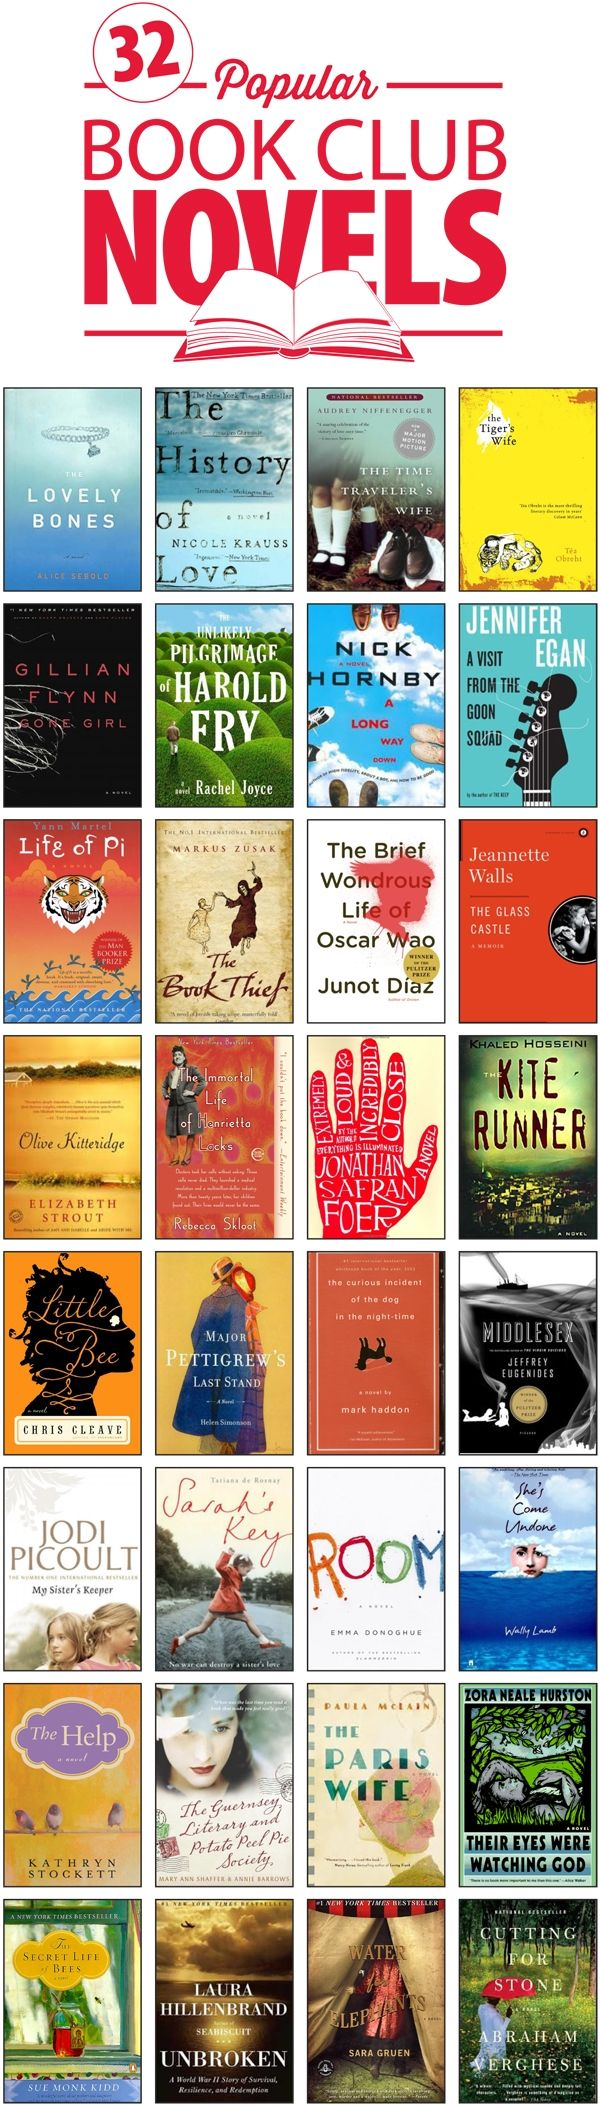 Top 32 Popular Fiction Books for Book Clubs -